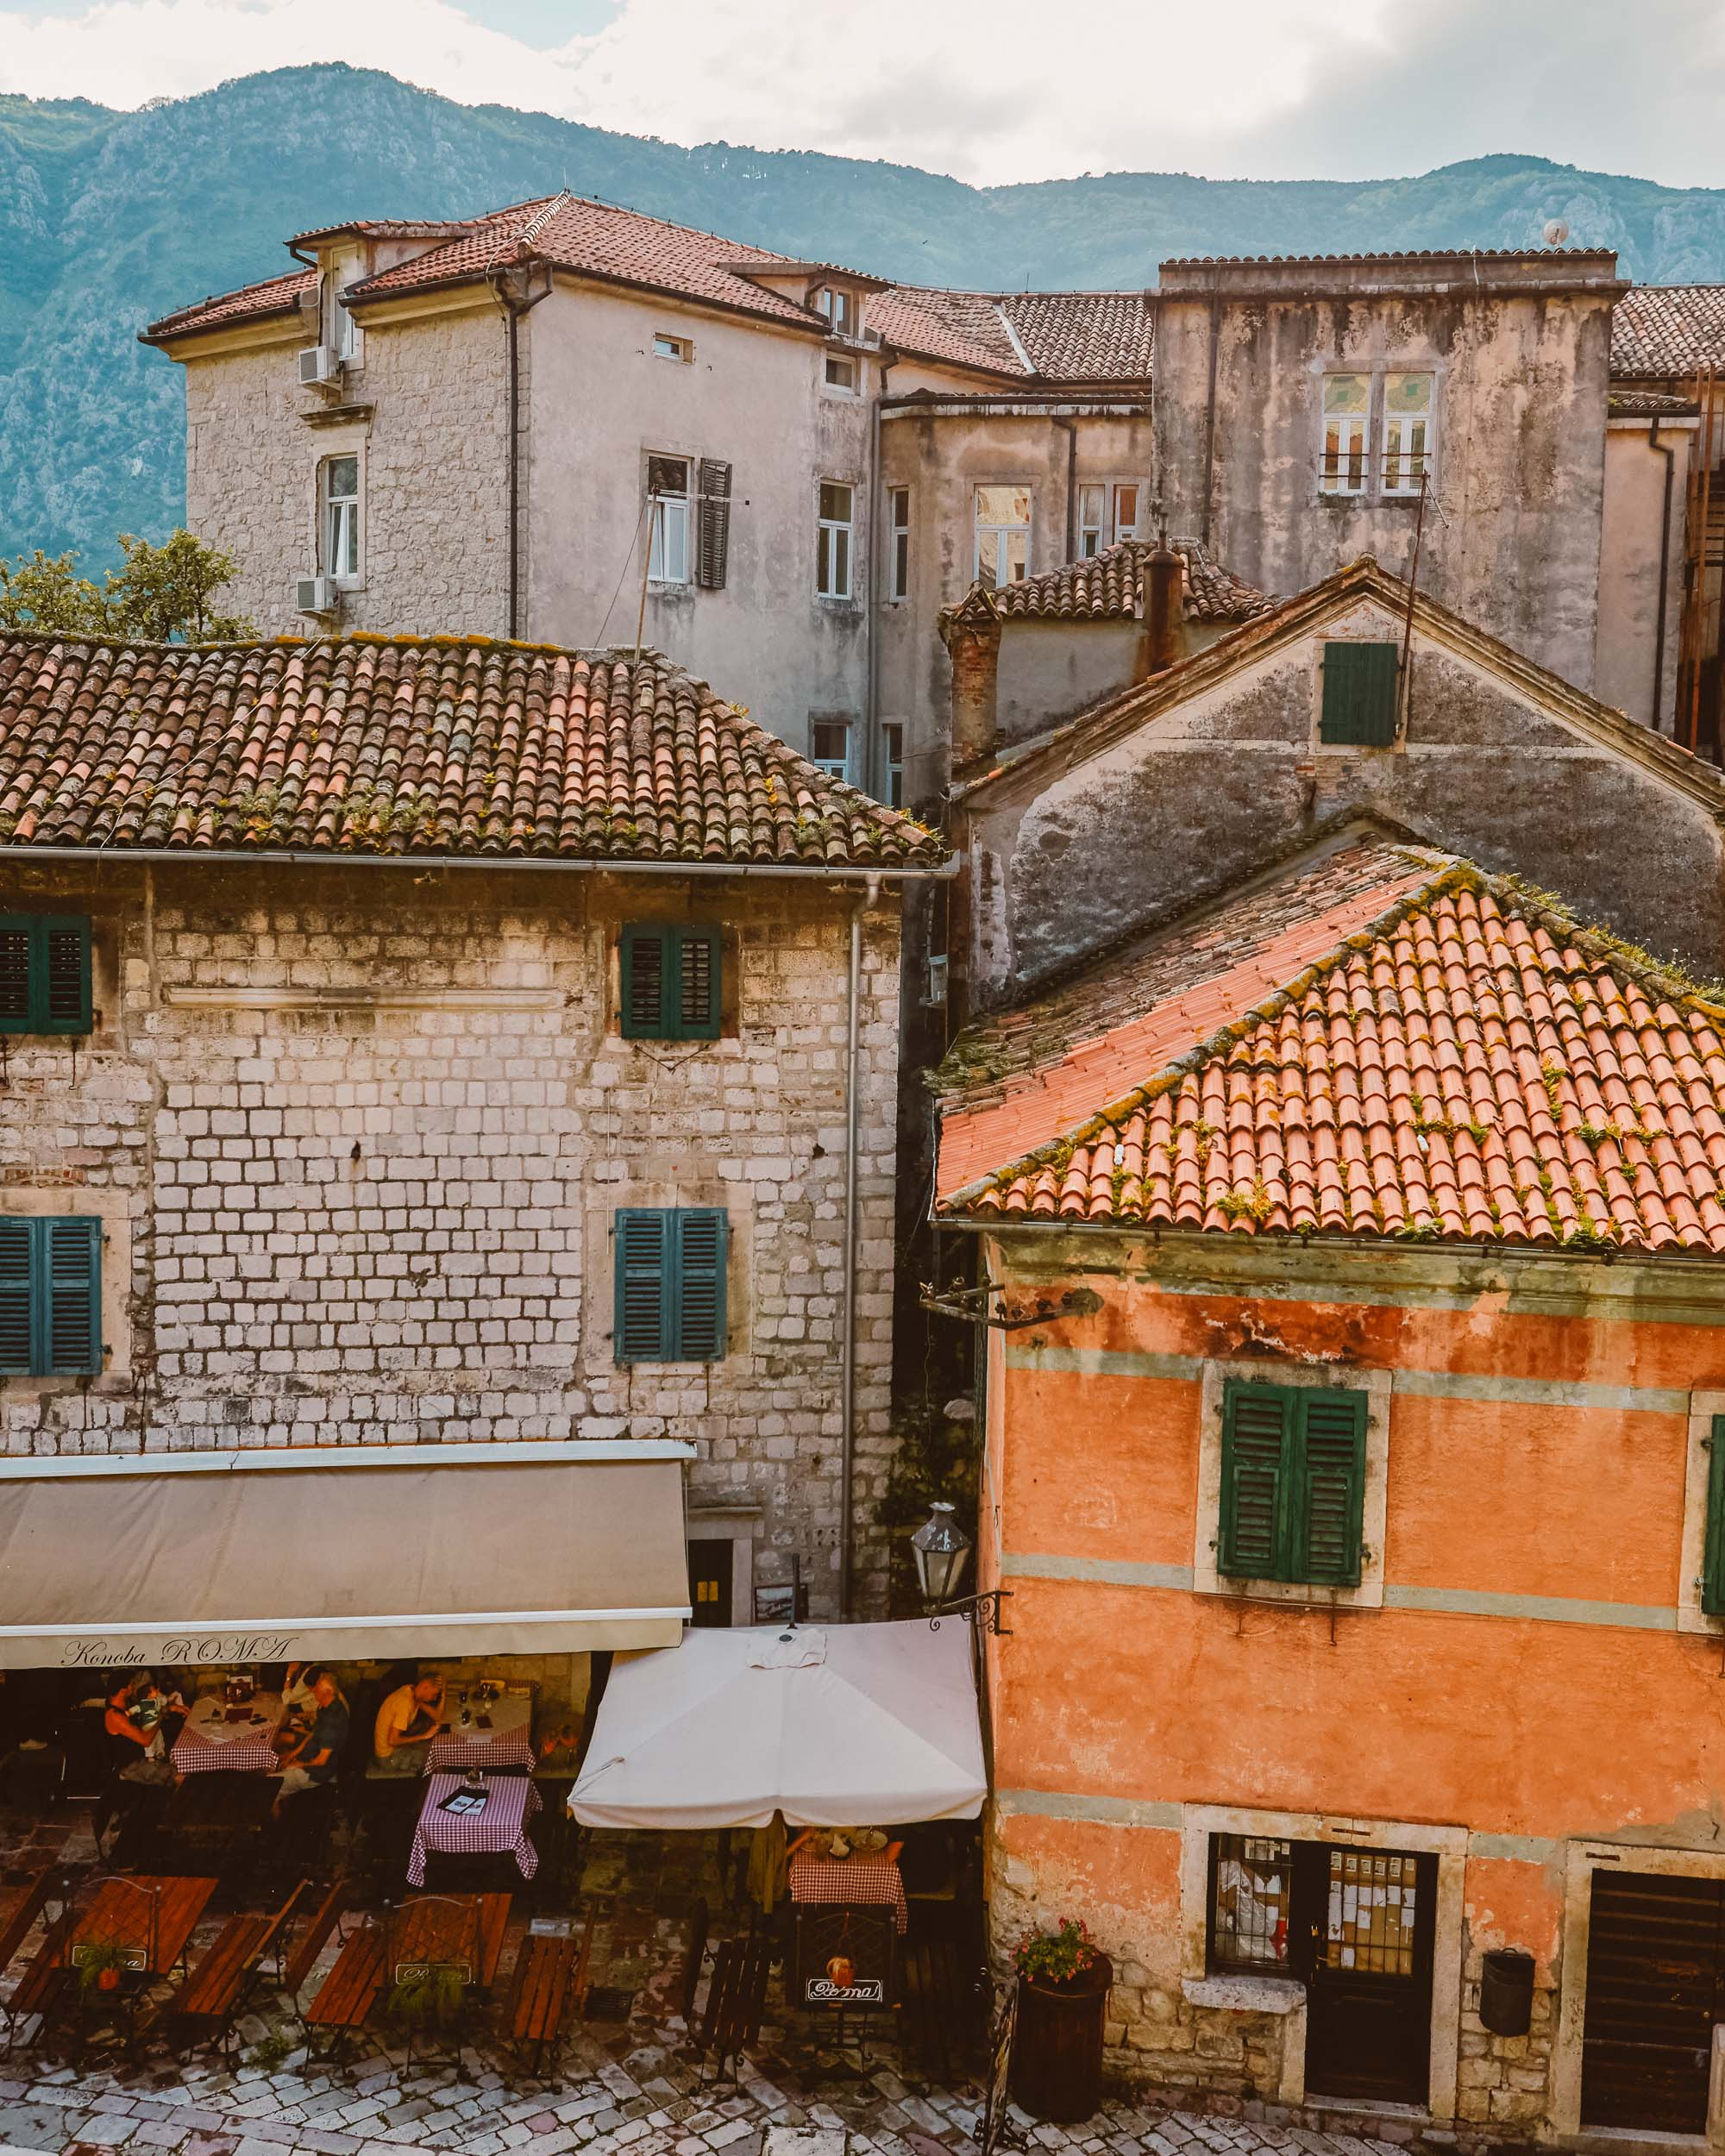 Kotor old town in Montenegro for our three month Europe road trip